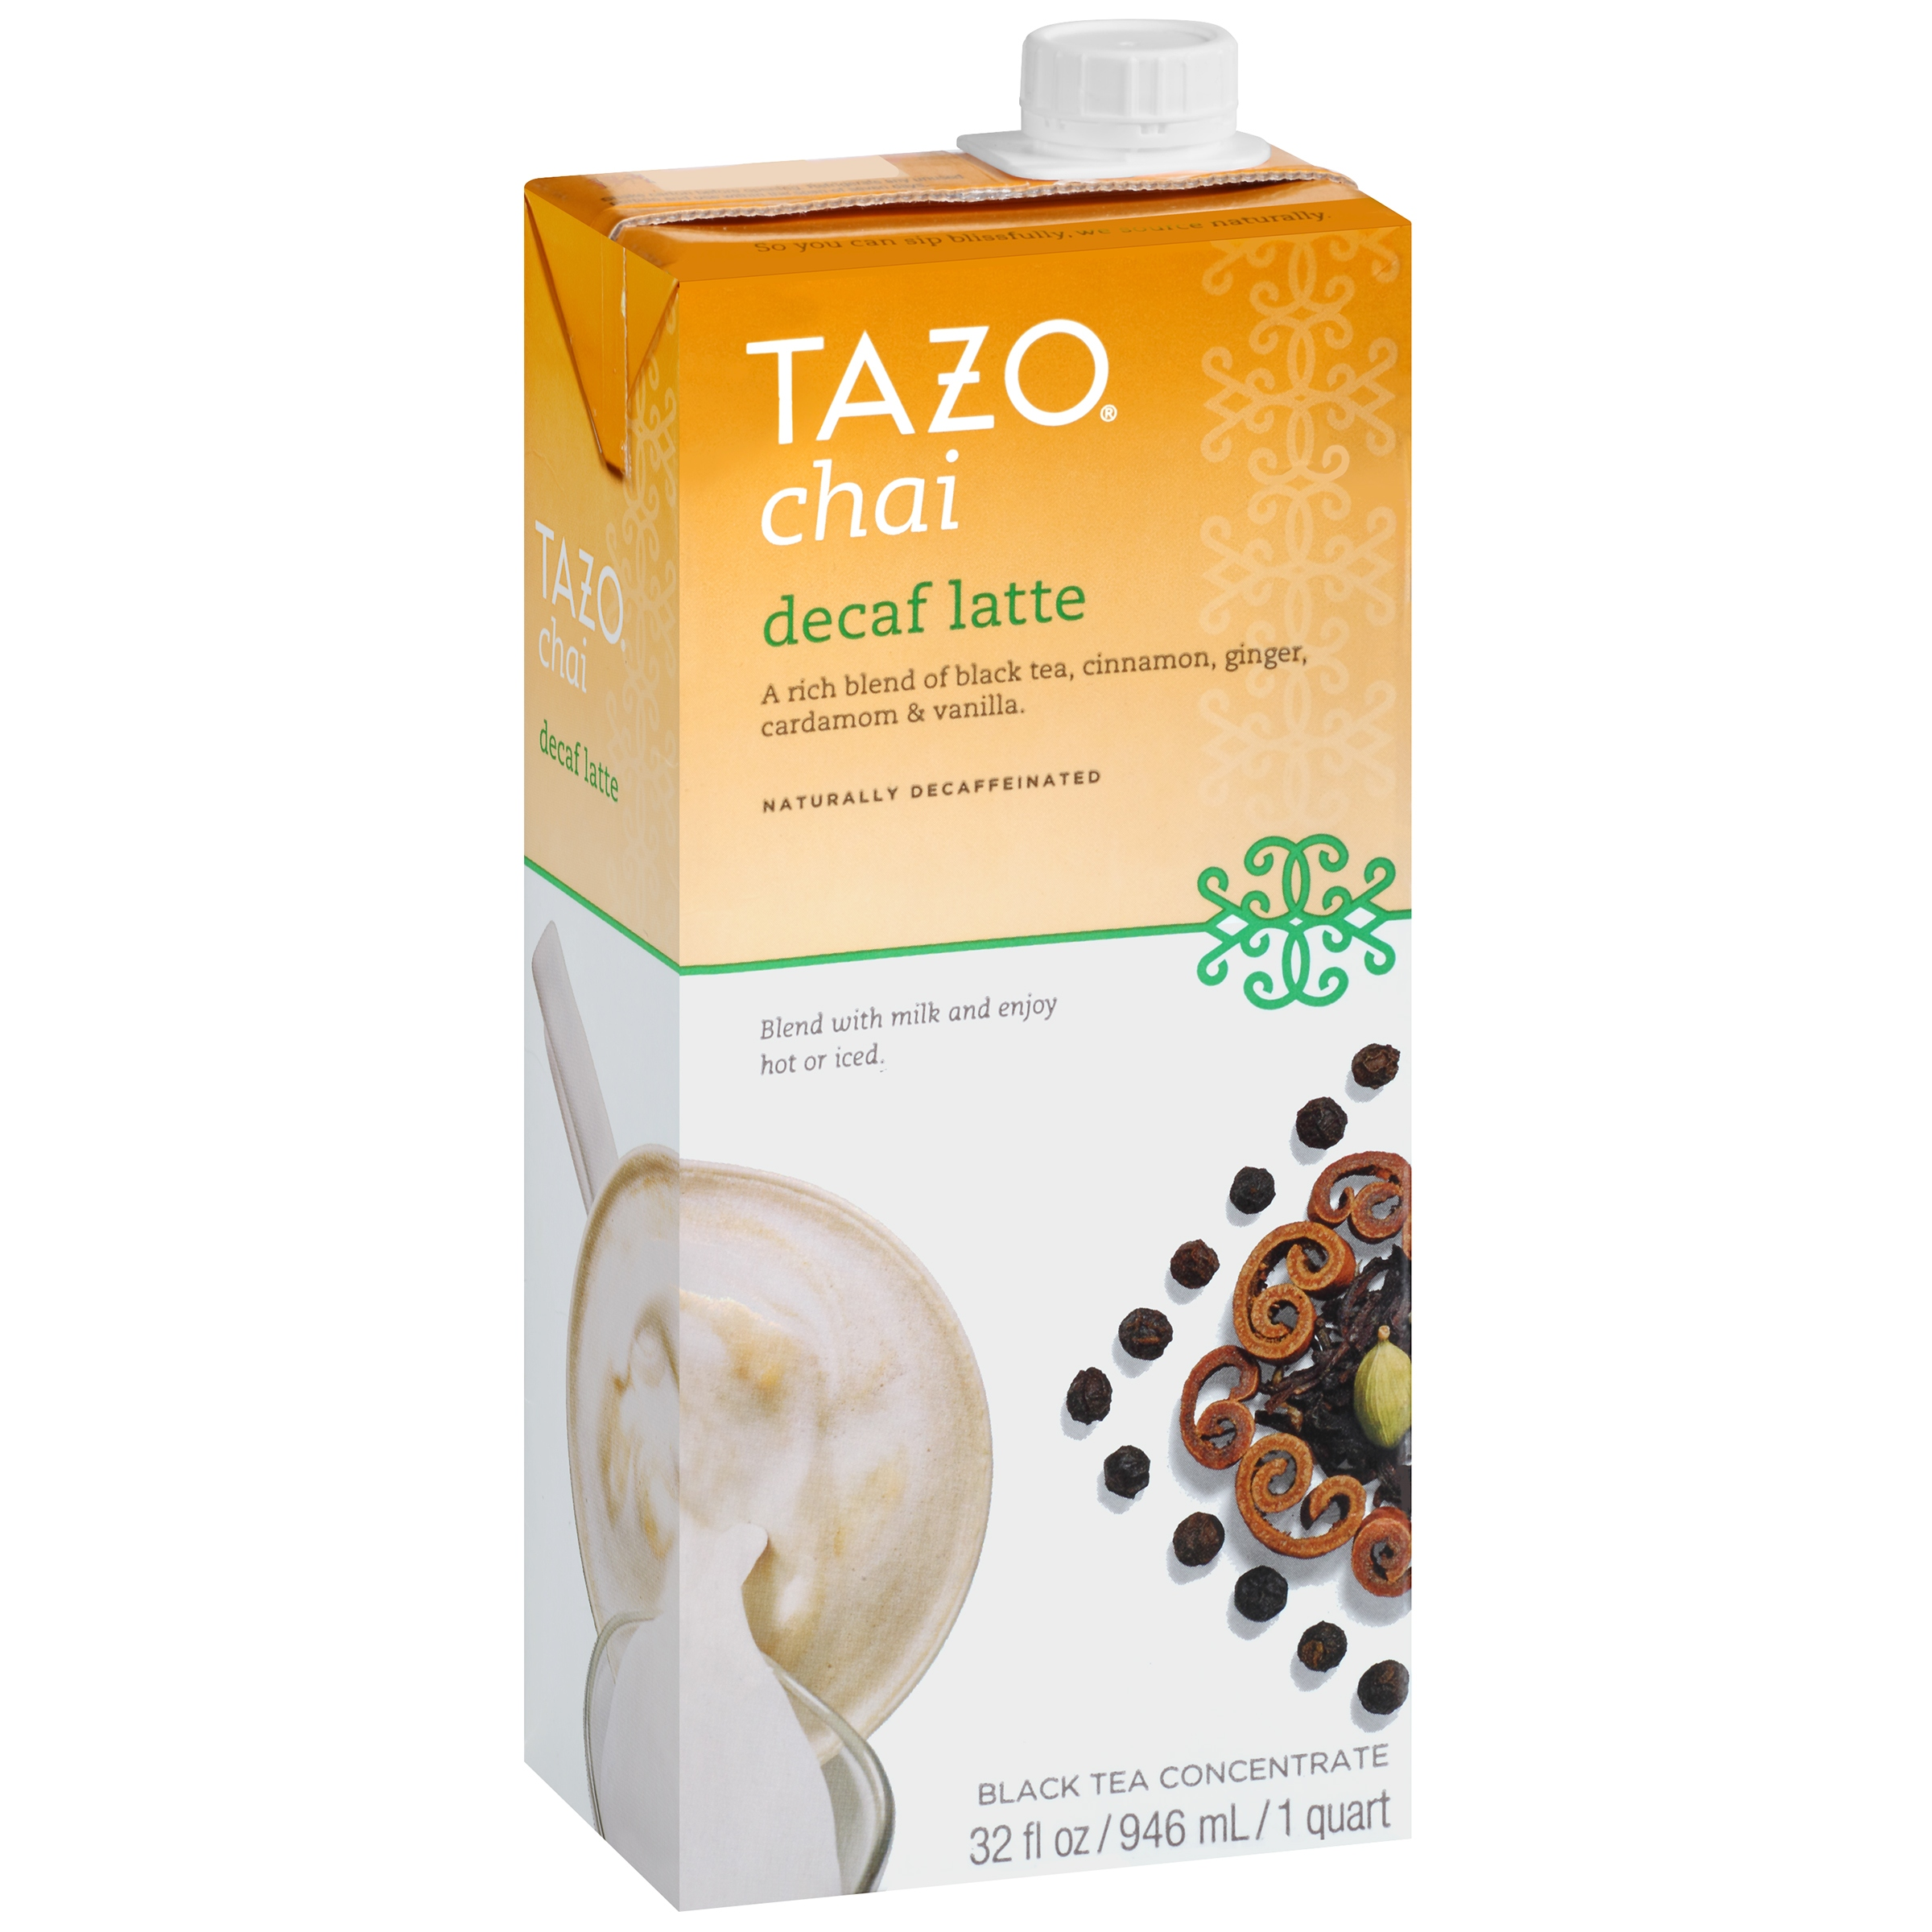 Tazo Chai, Spiced Black Tea Latte Concentrate, Ounce Containers Pack of 4 See more like this Tazo Chai Tea Latte Concentrate 32 oz, 1 quart - Pack of 3 by TAZO Brand New.